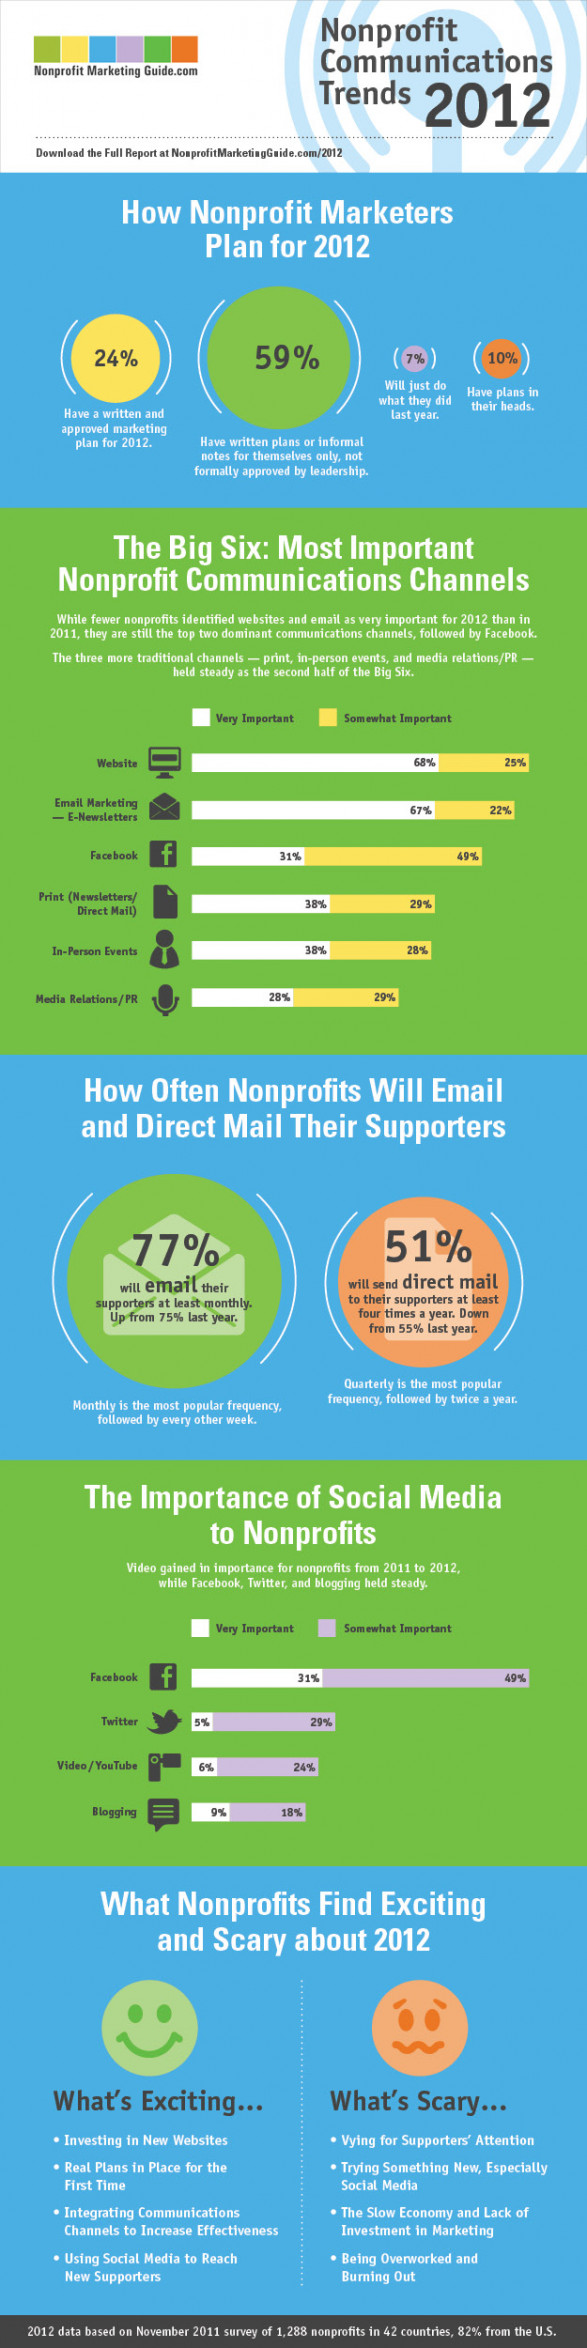 2012 Nonprofit Communications Trends